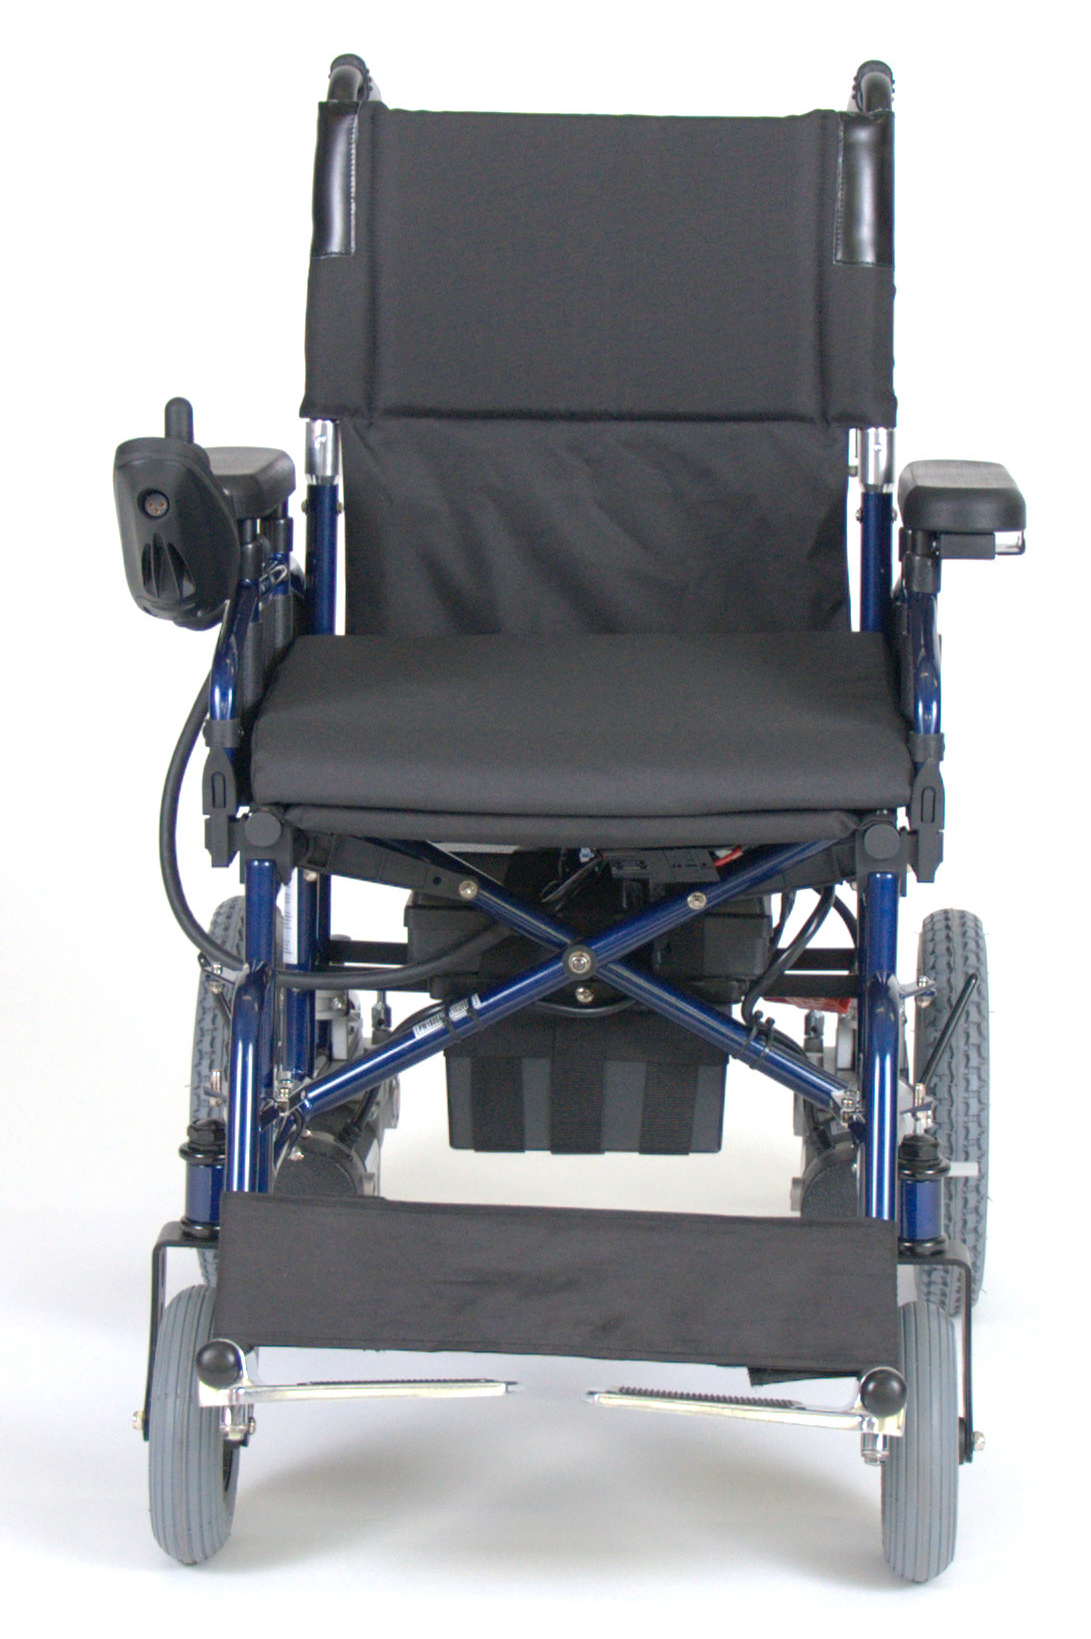 wildcat-folding-power-wheelchair-wildcat18b-drive-medical-2.jpg